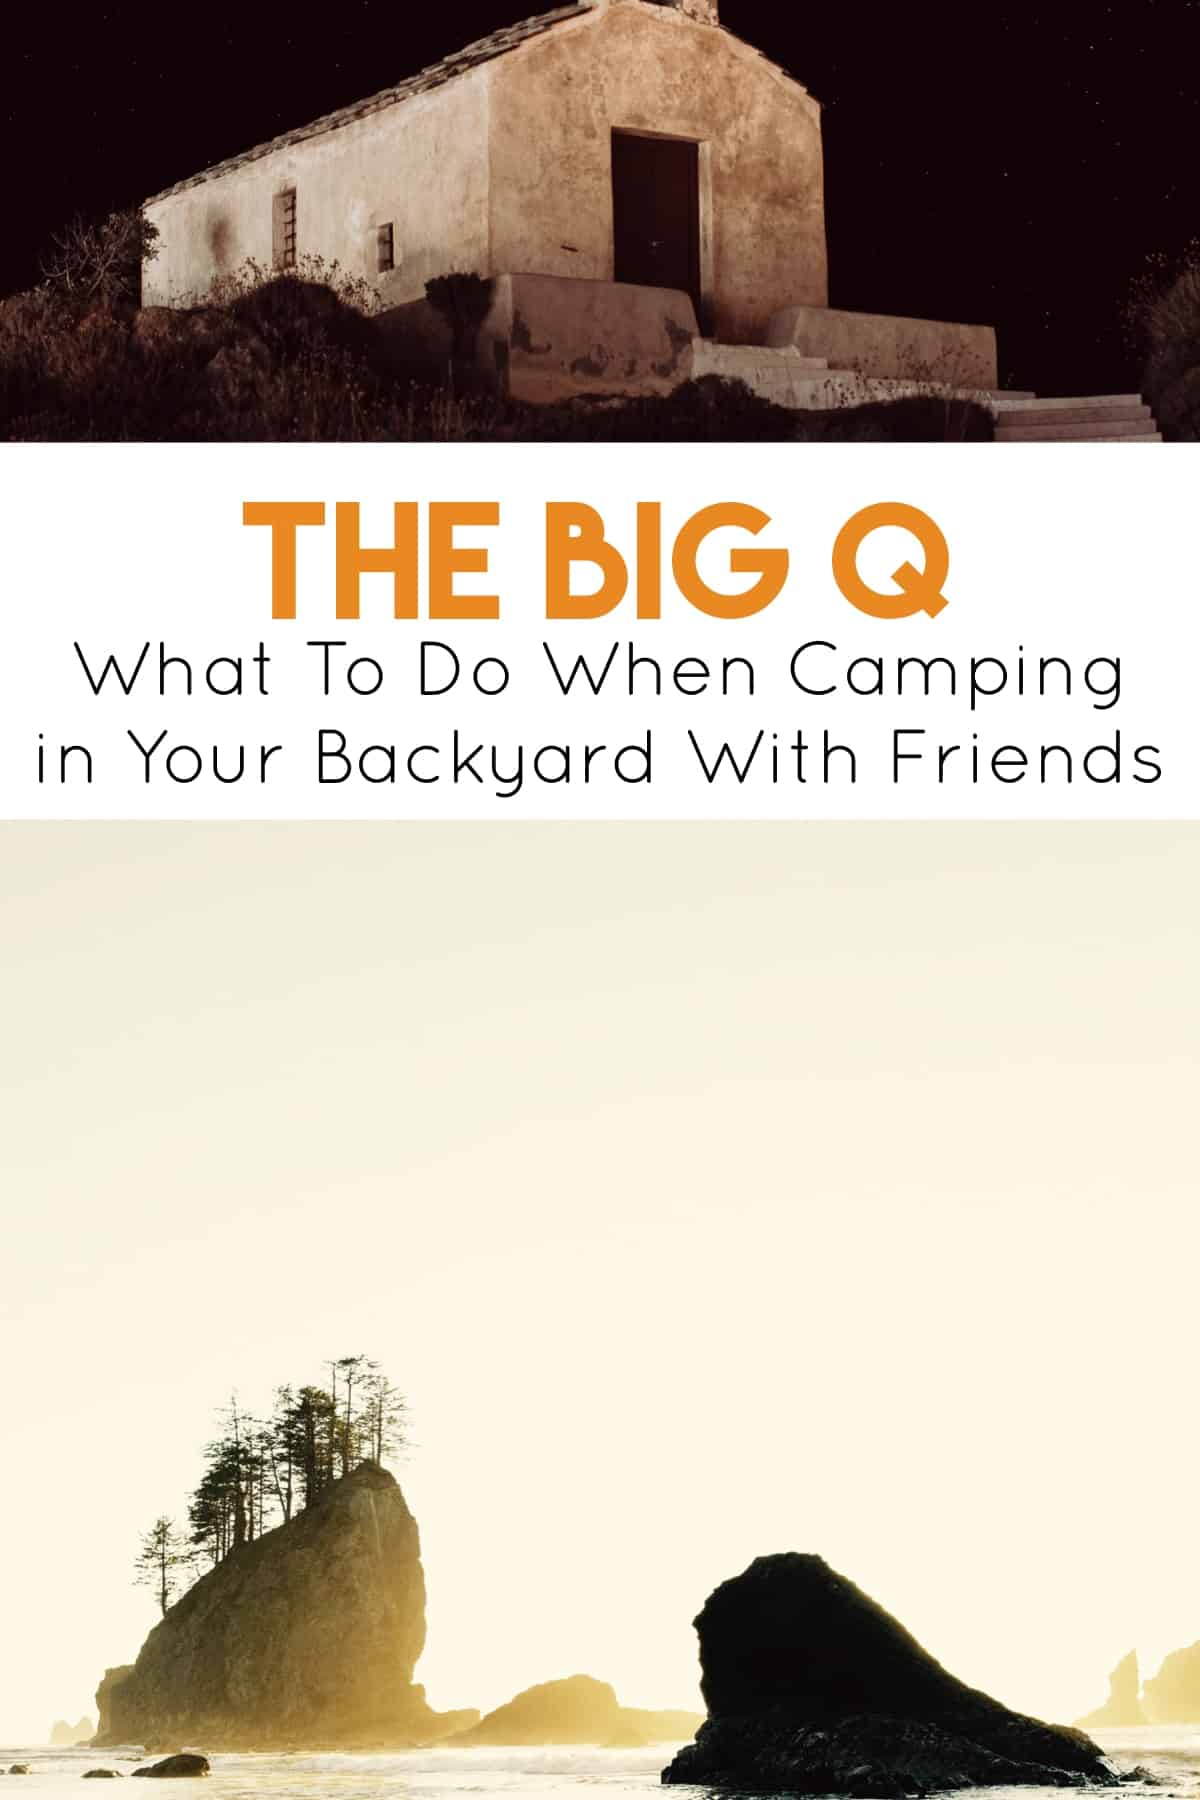 Pinterest image for The Big Q - What To Do When Camping in Your Backyard With Friends